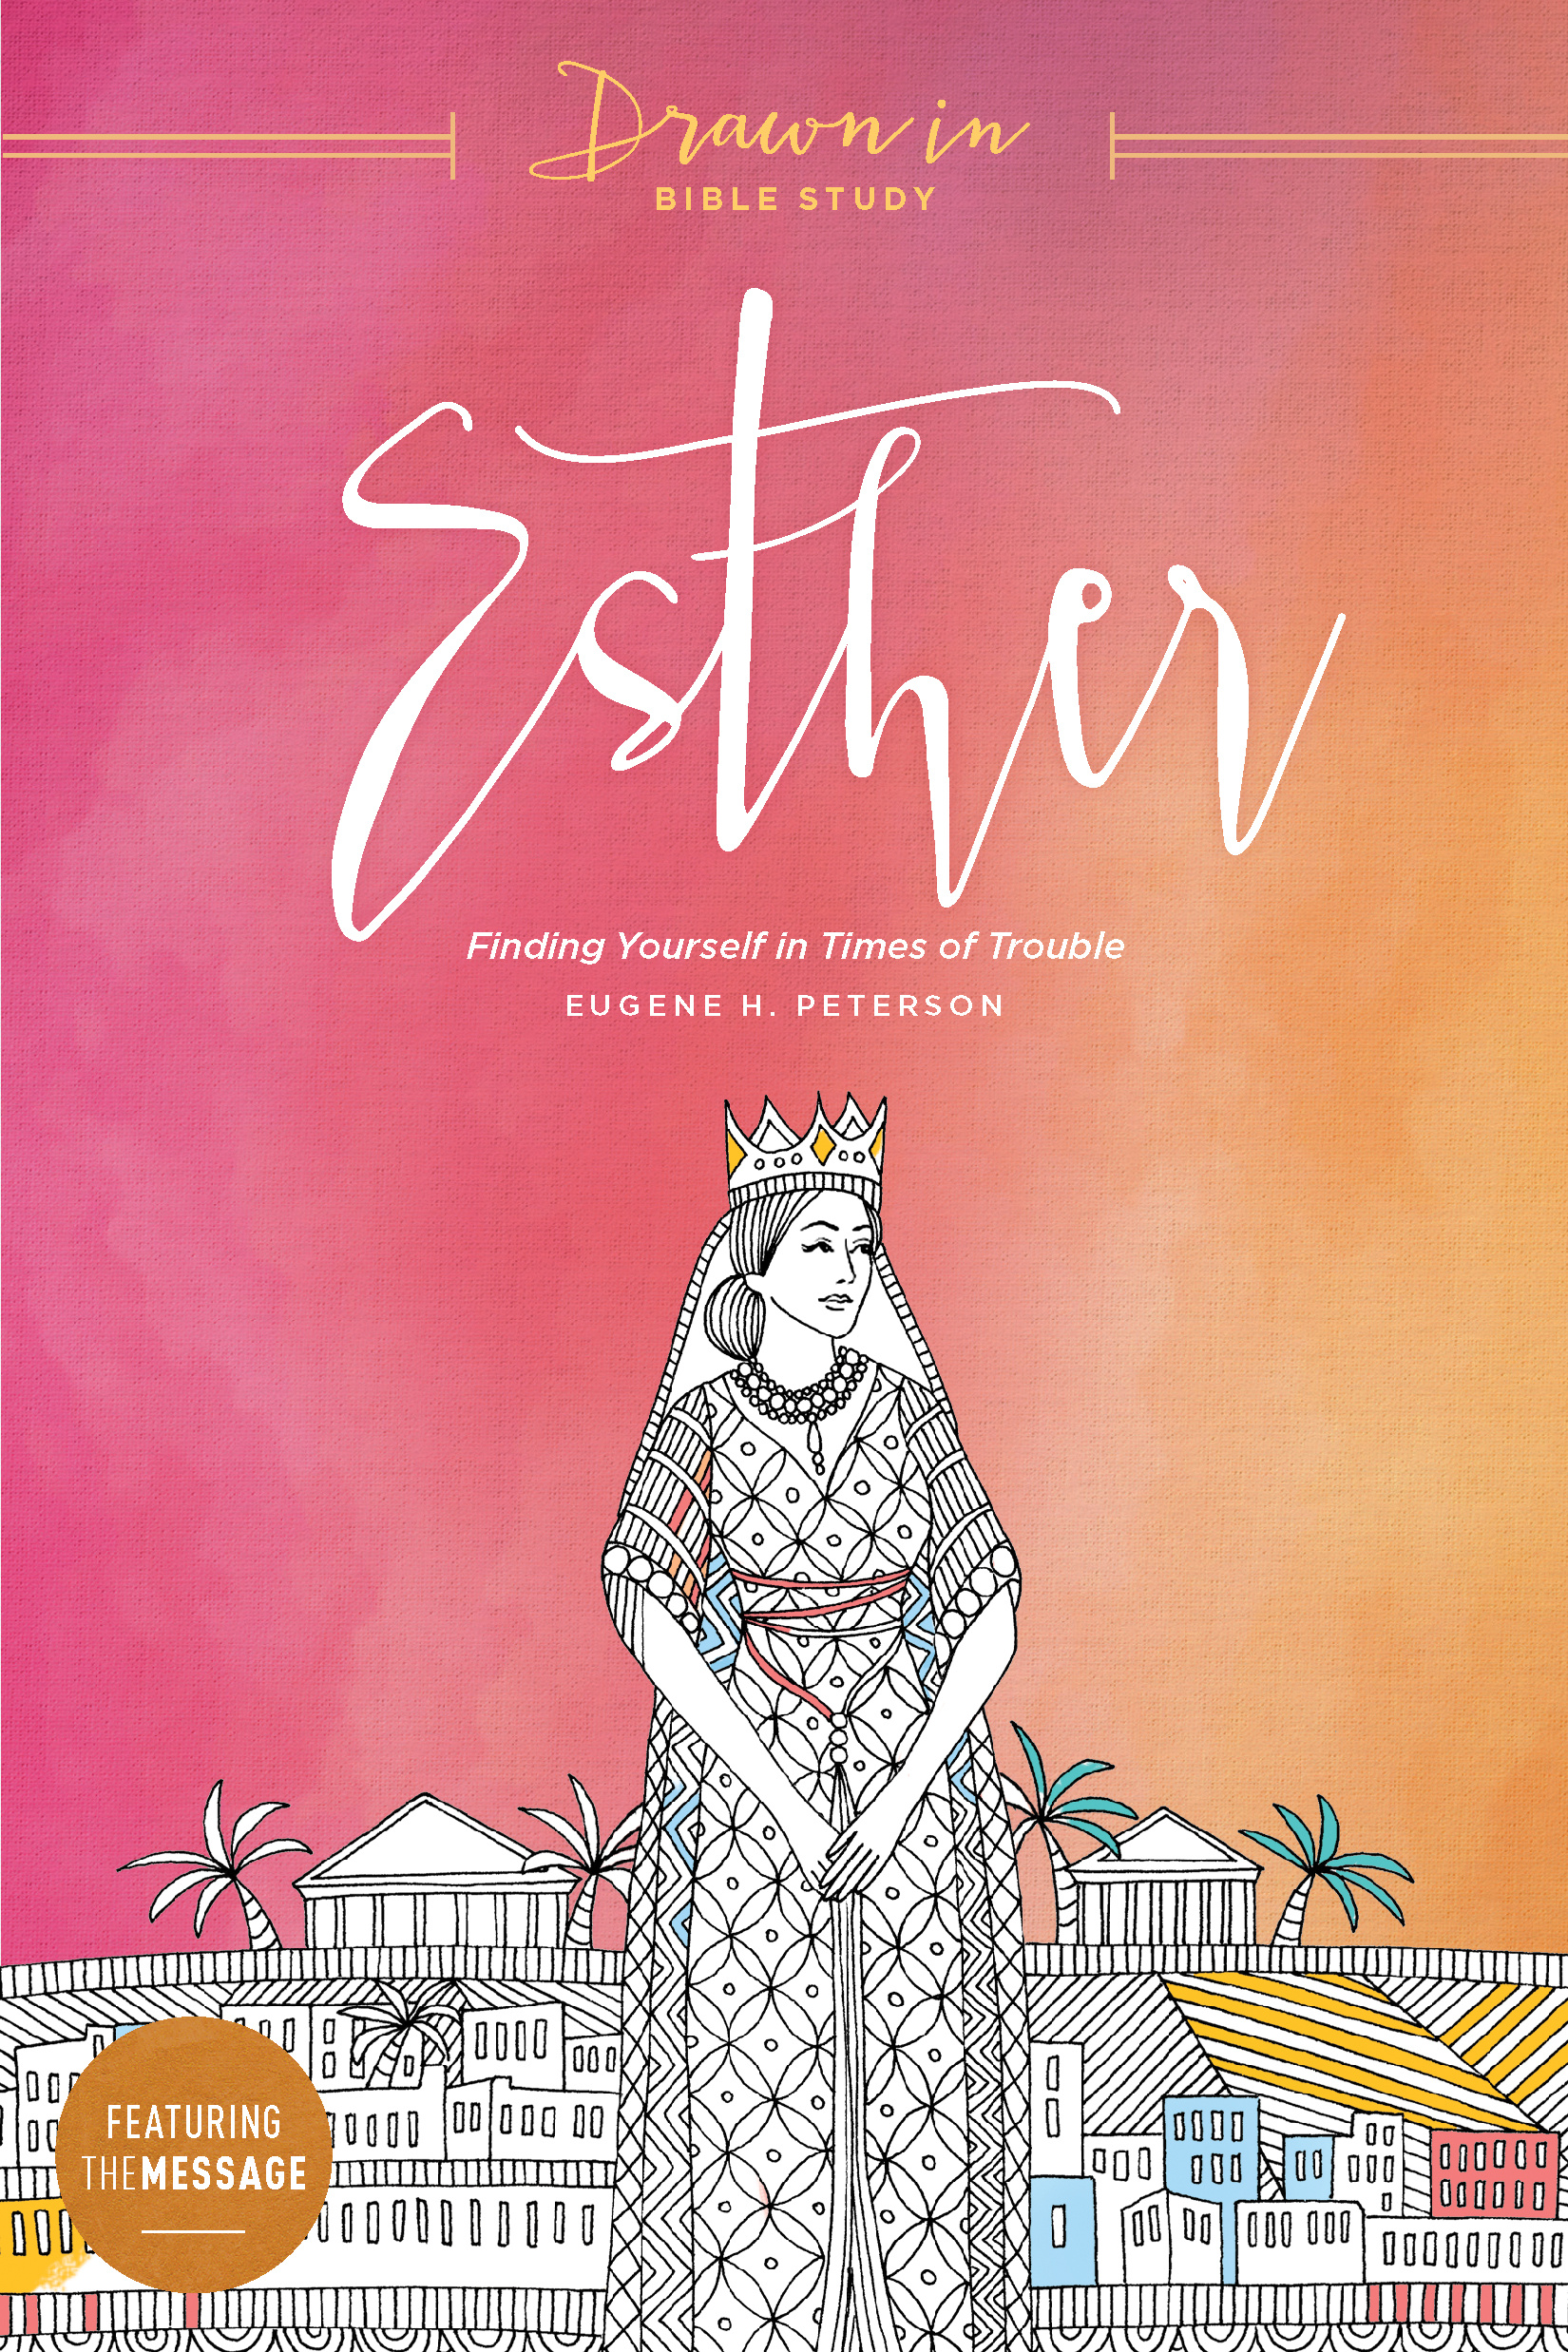 Drawn-In Bible Study: Esther